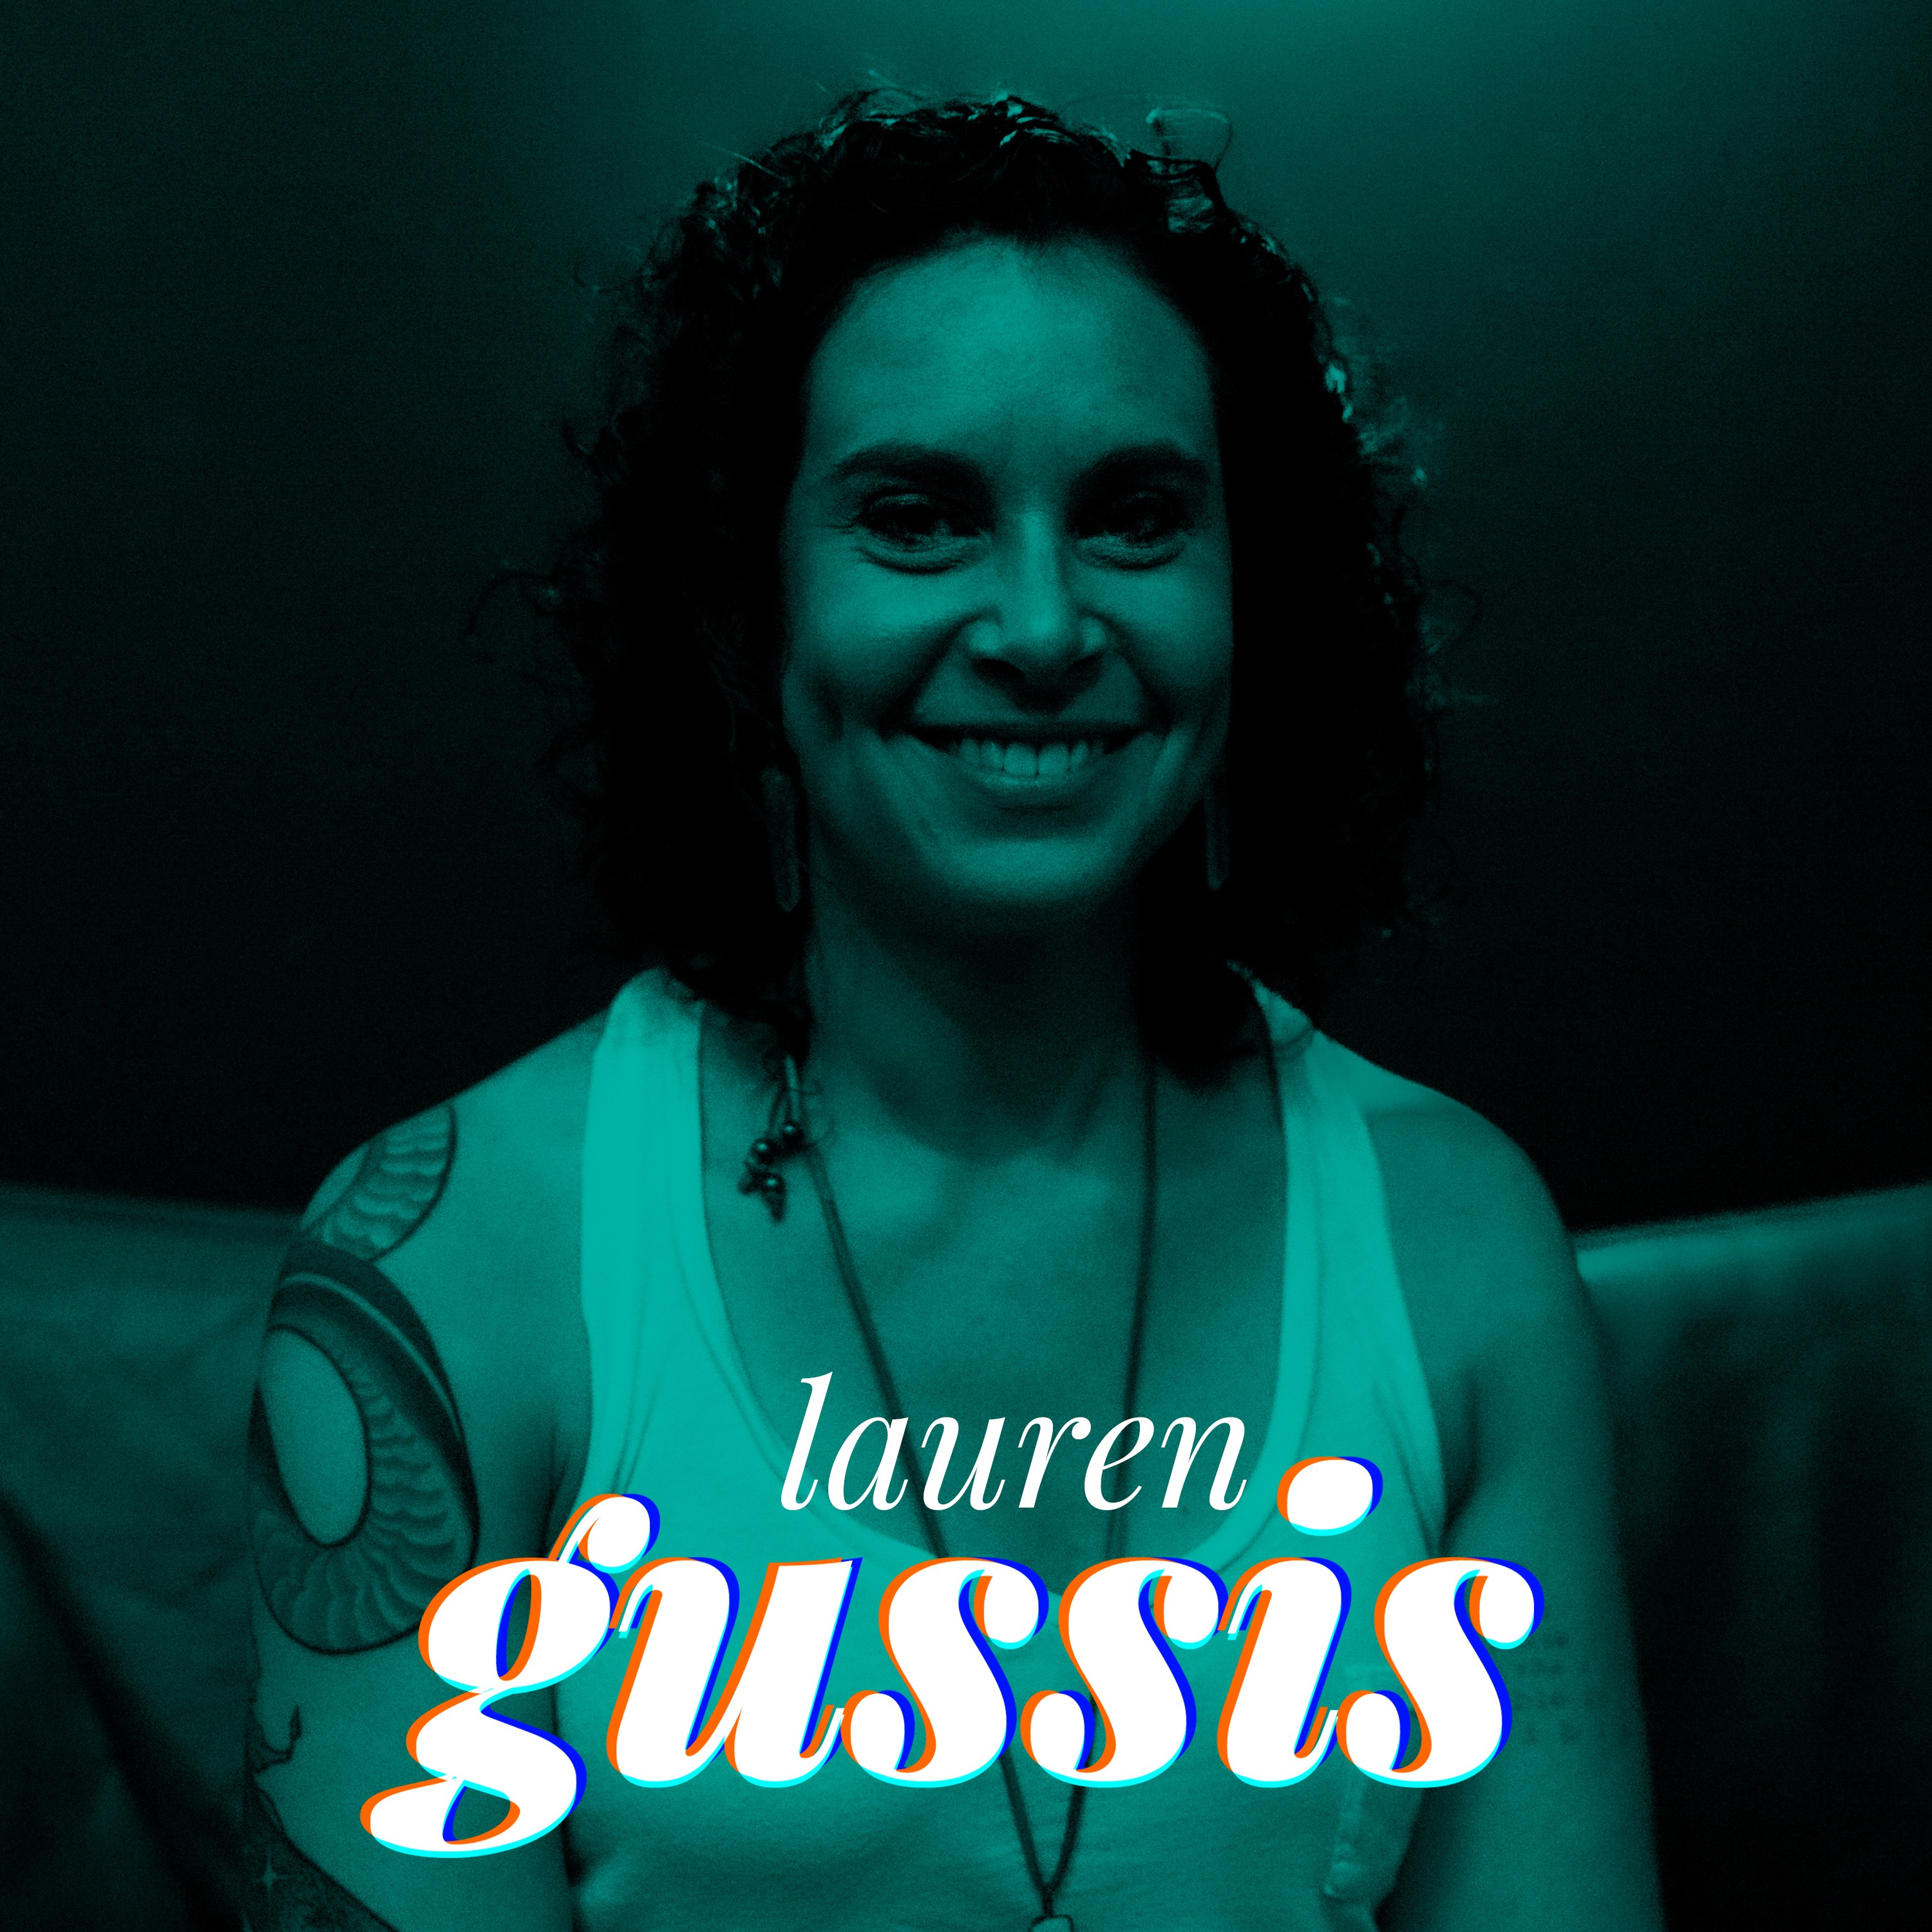 Lauren Gussis on why she created Insatiable, disordered eating, and why it's all so important.